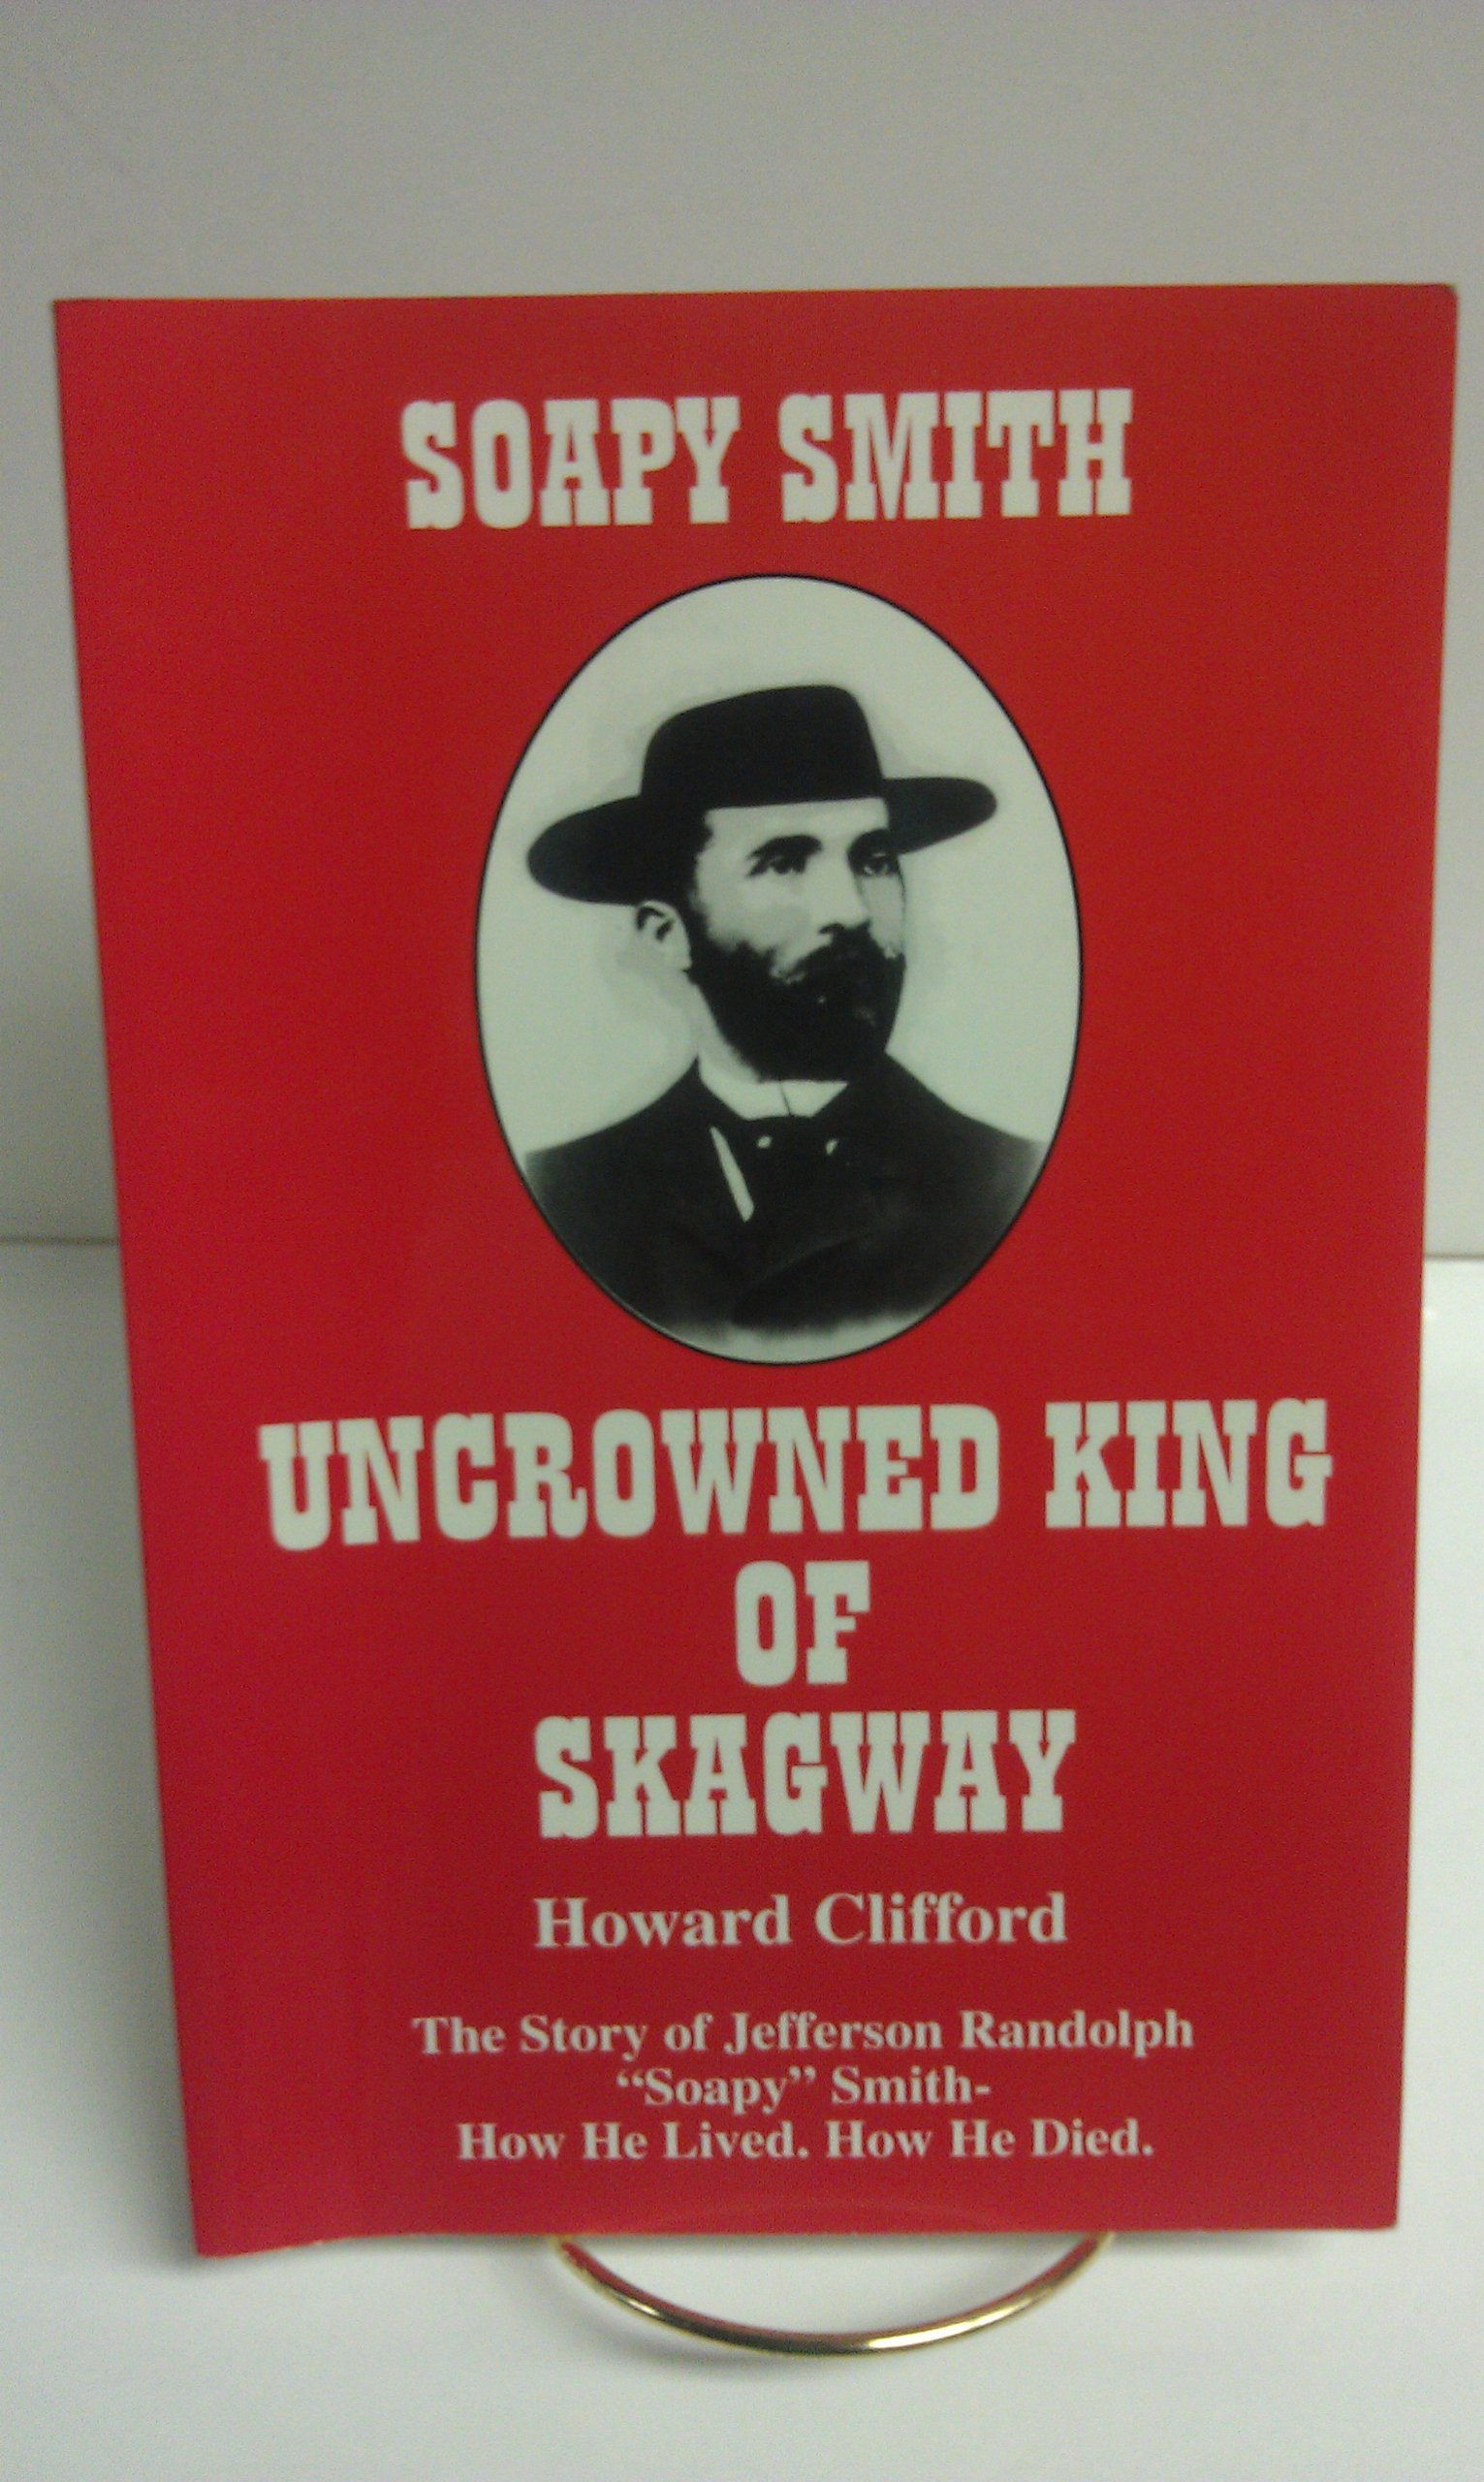 Soapy Smith: Uncrowned king of Skagway, Clifford, Howard